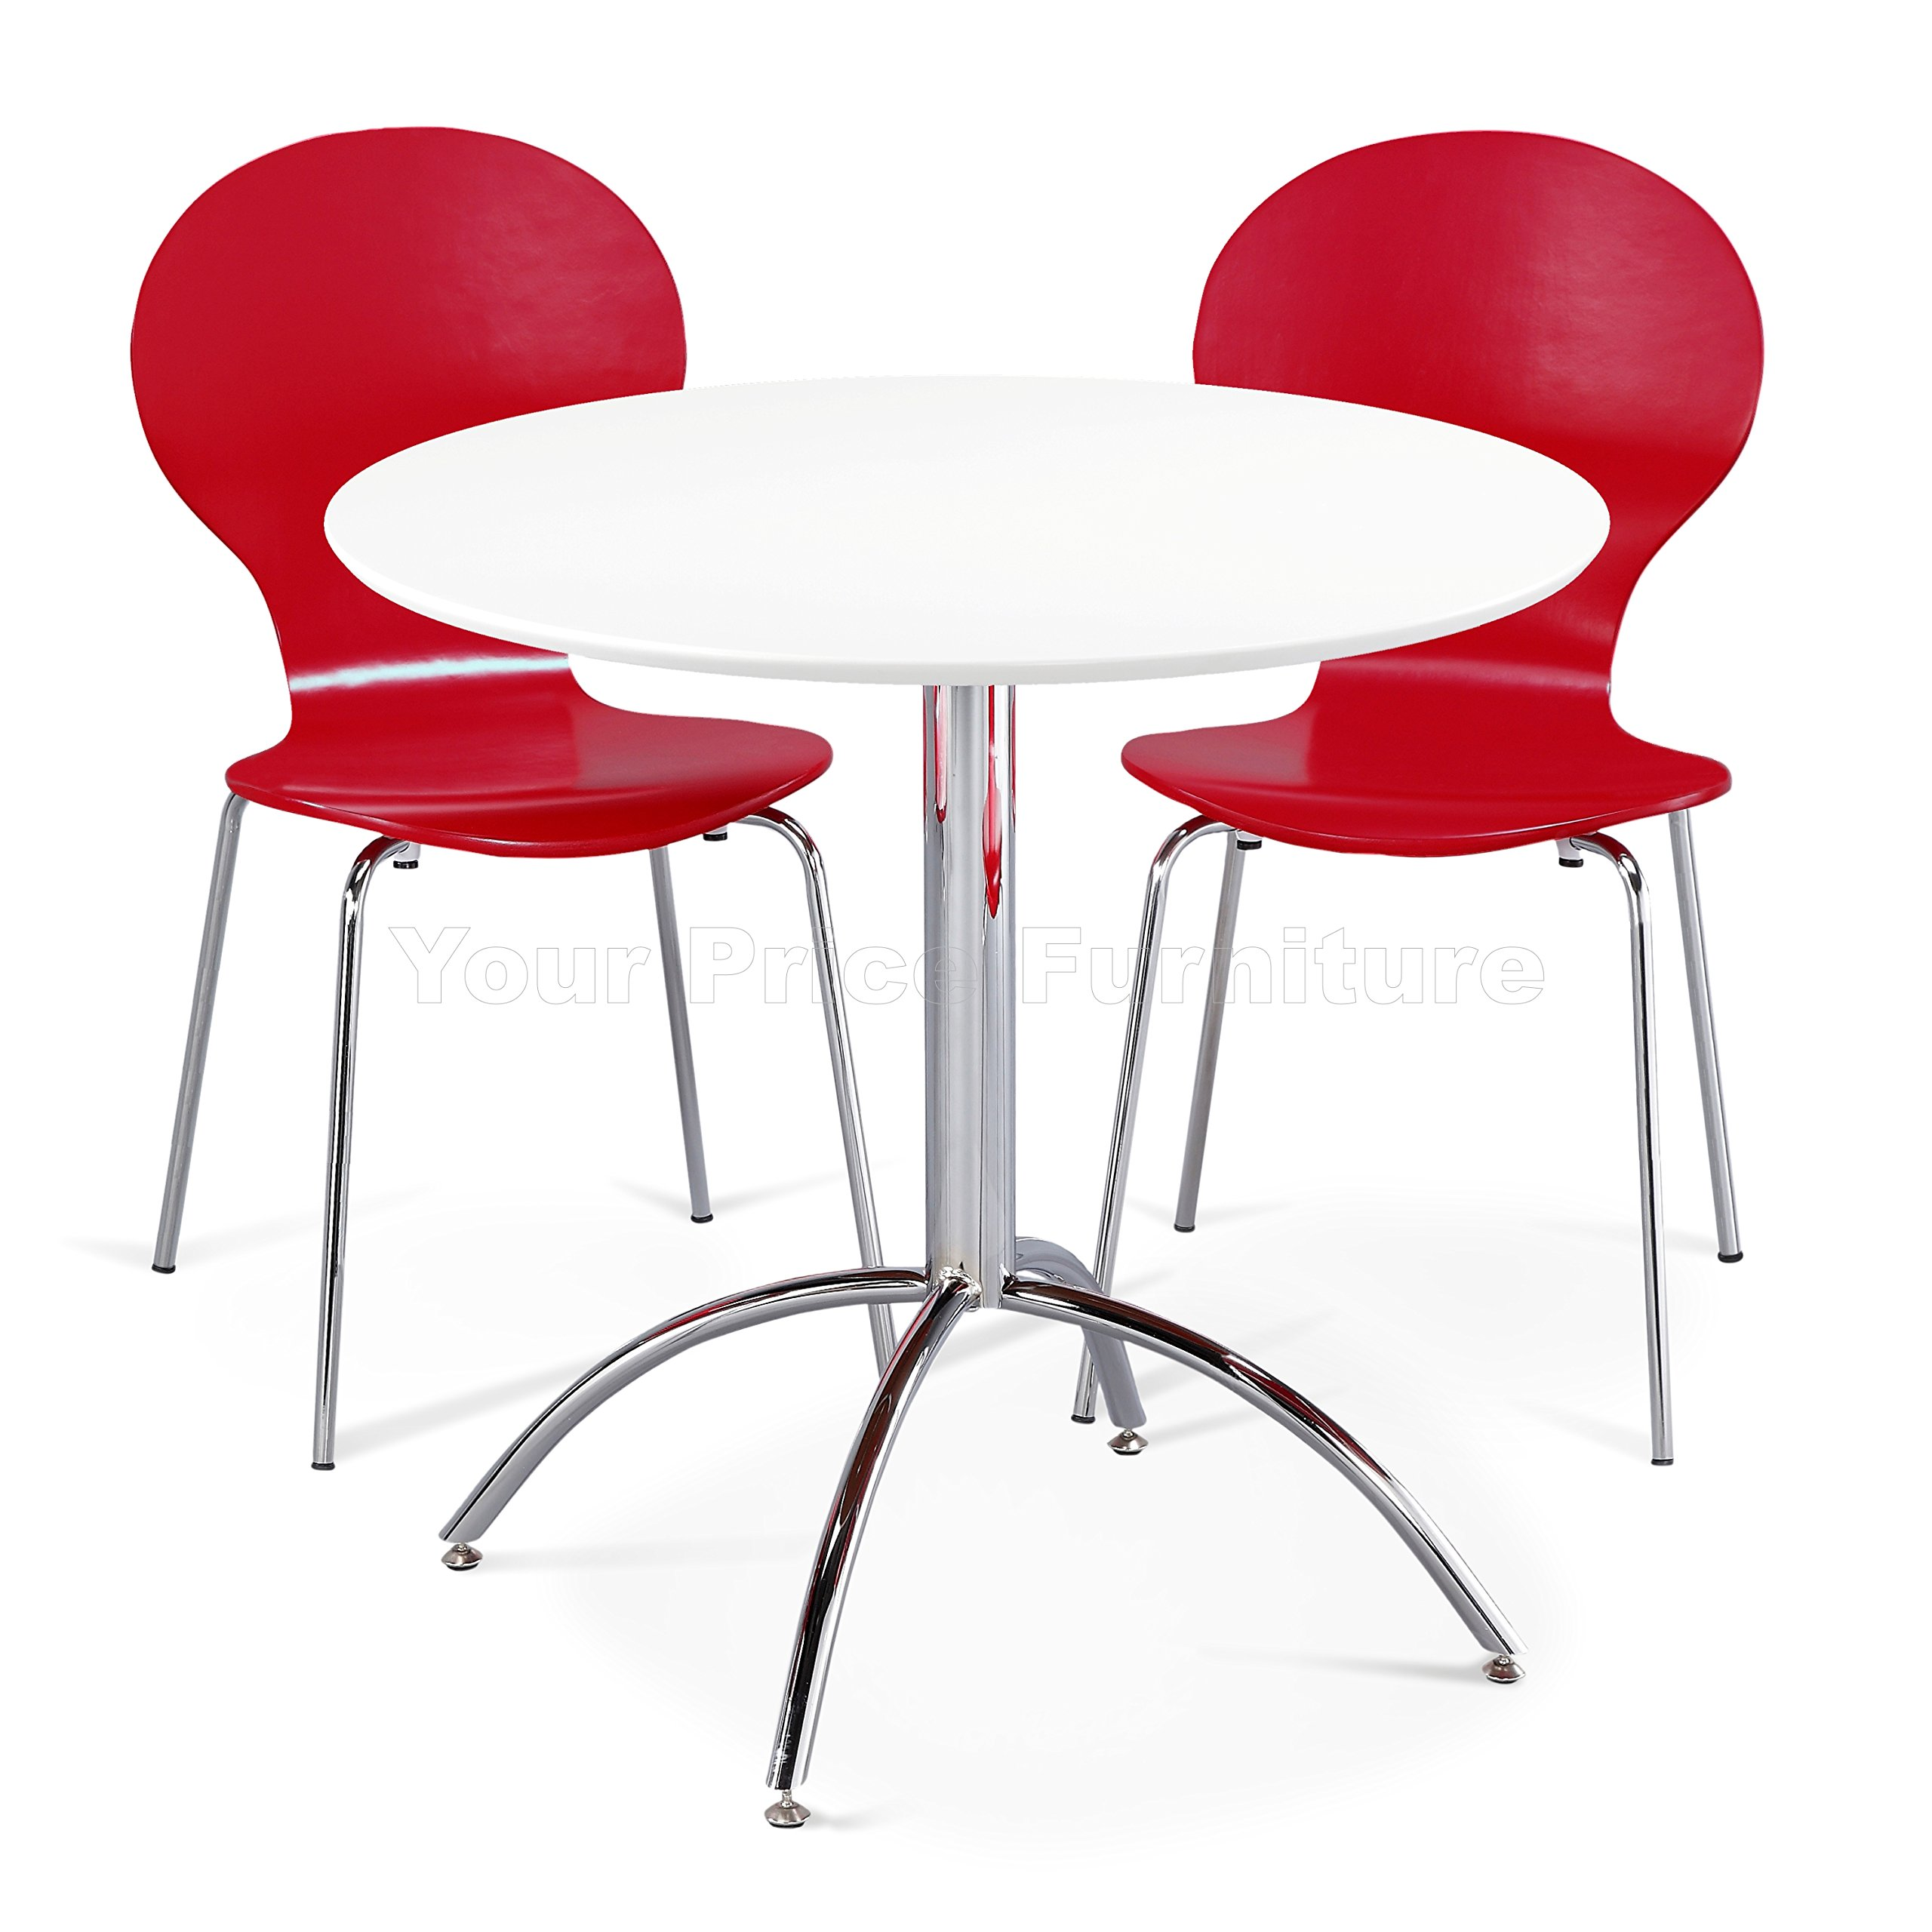 Your Price Furniture.com Small Round Kitchen Dining Table & 9 ...